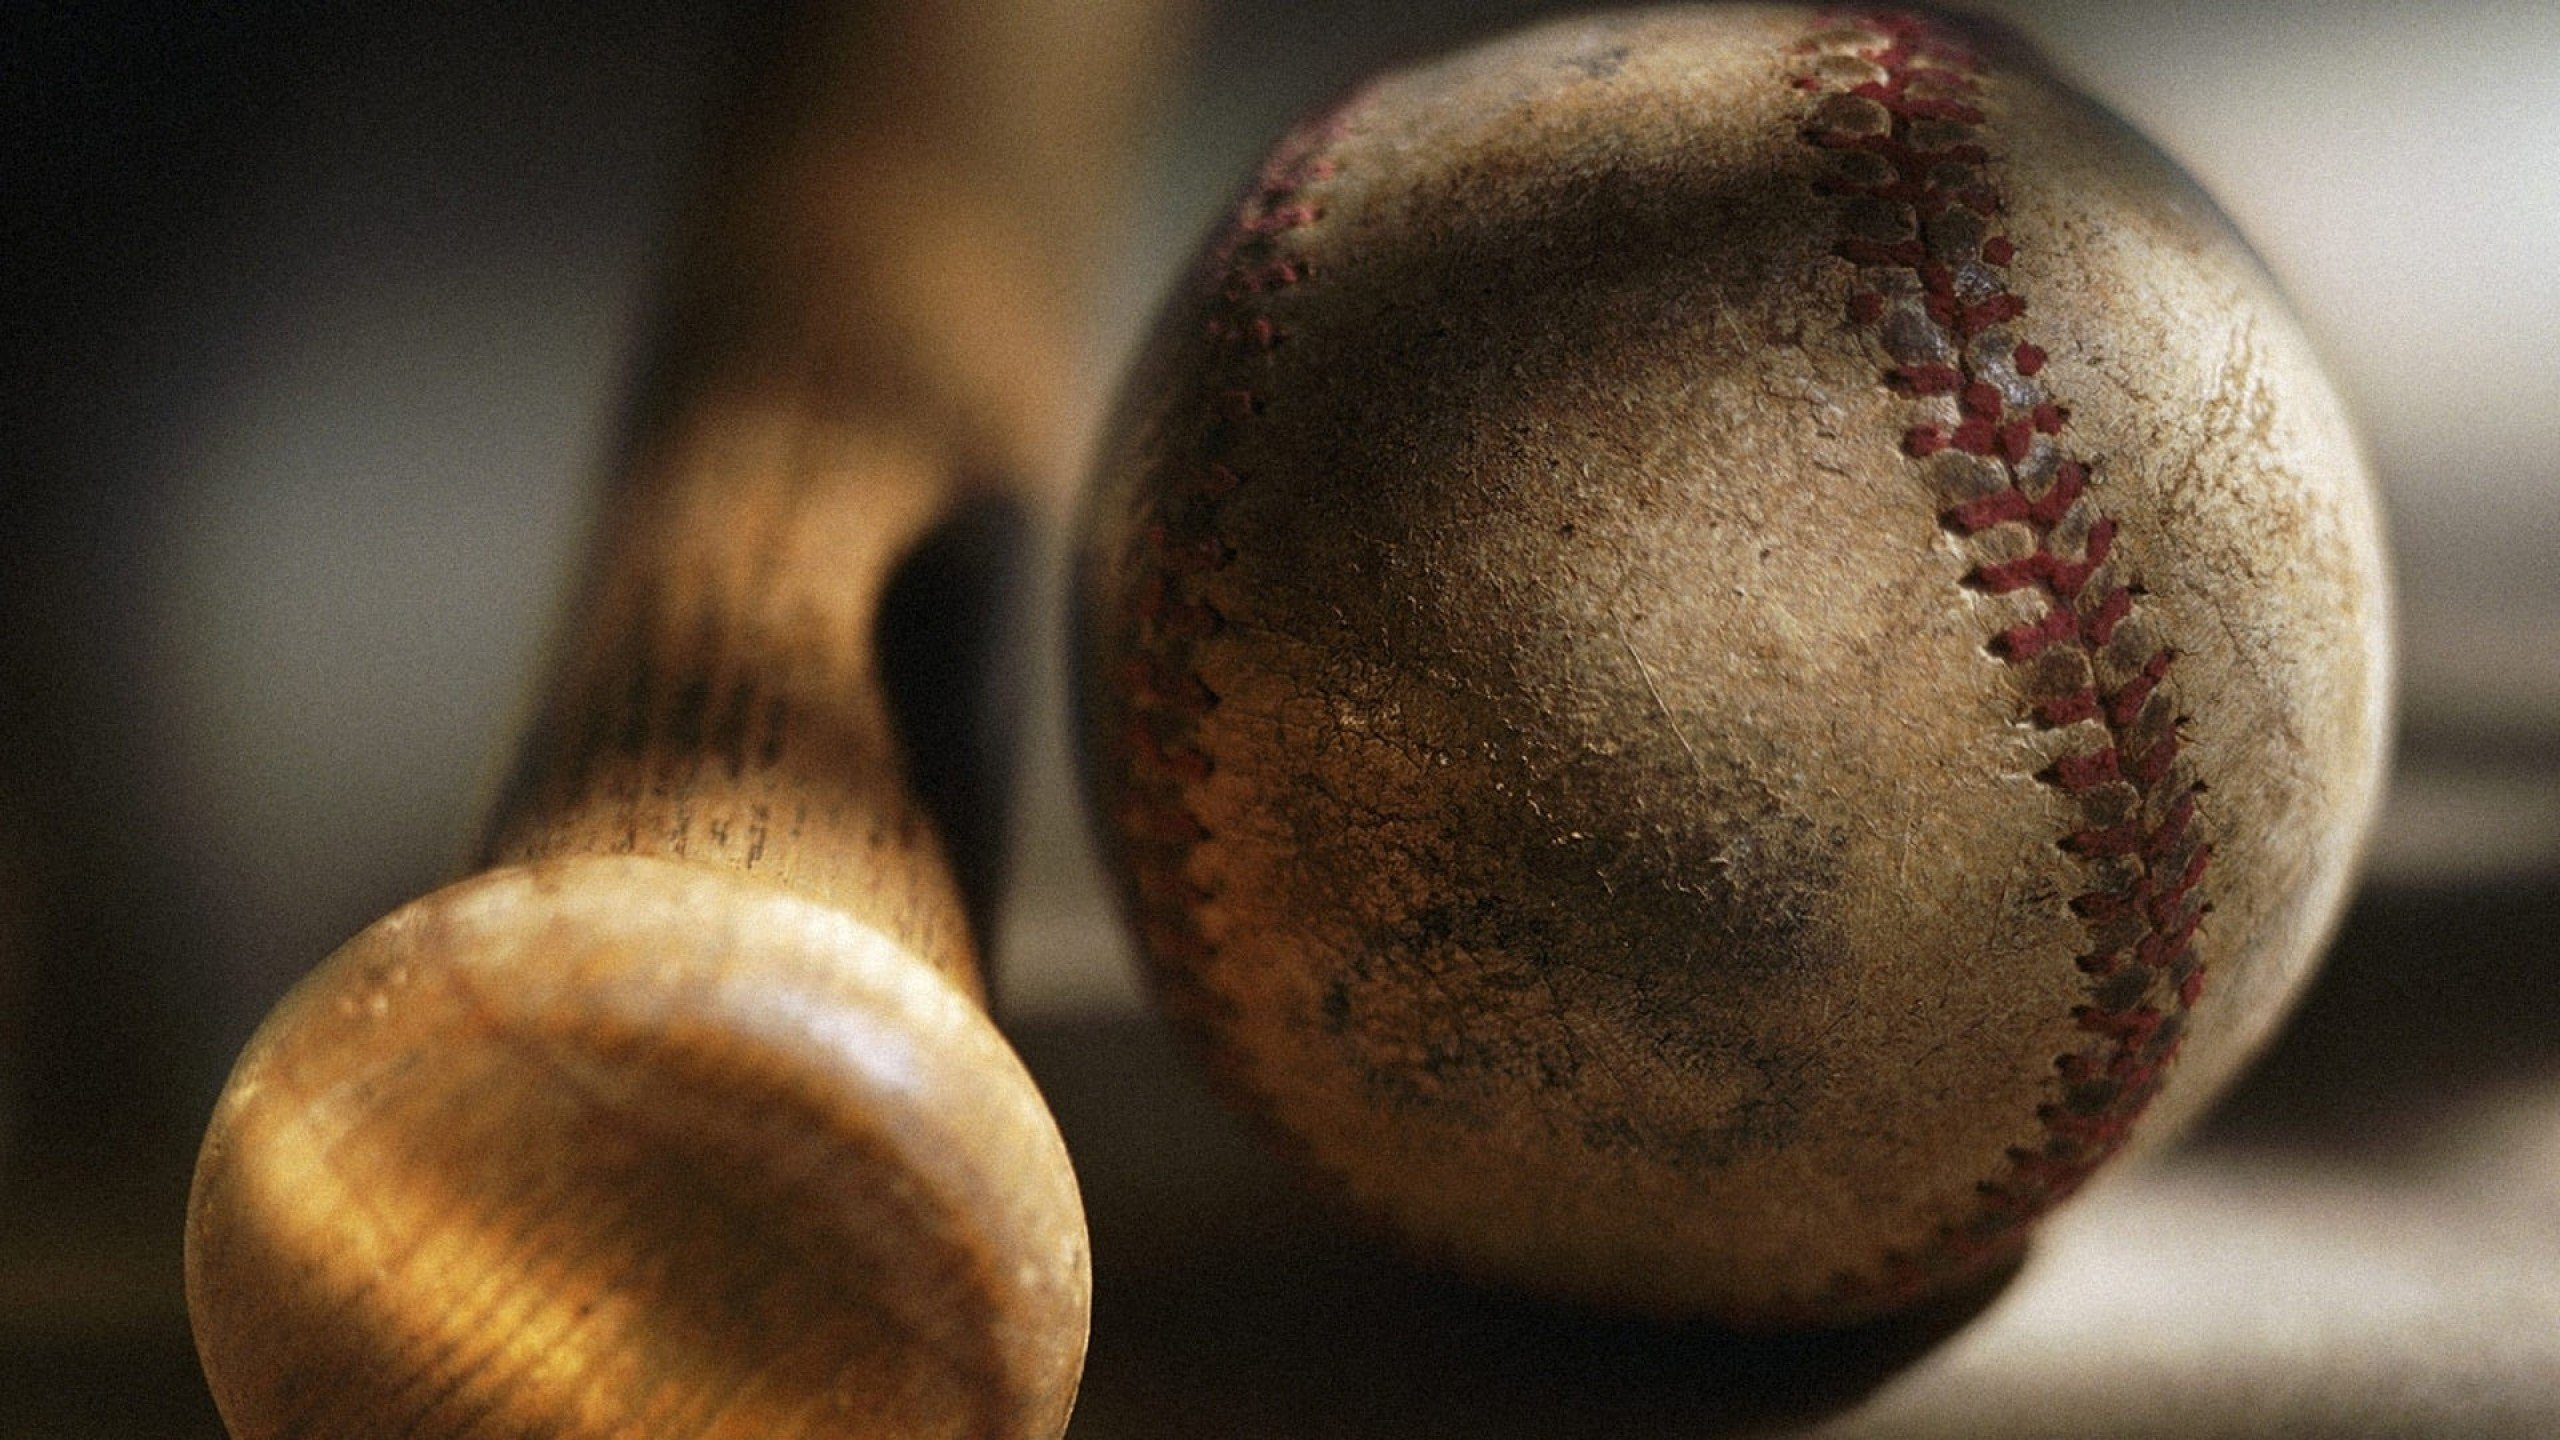 Free download Baseball background ID:334000 hd 2560x1440 for computer